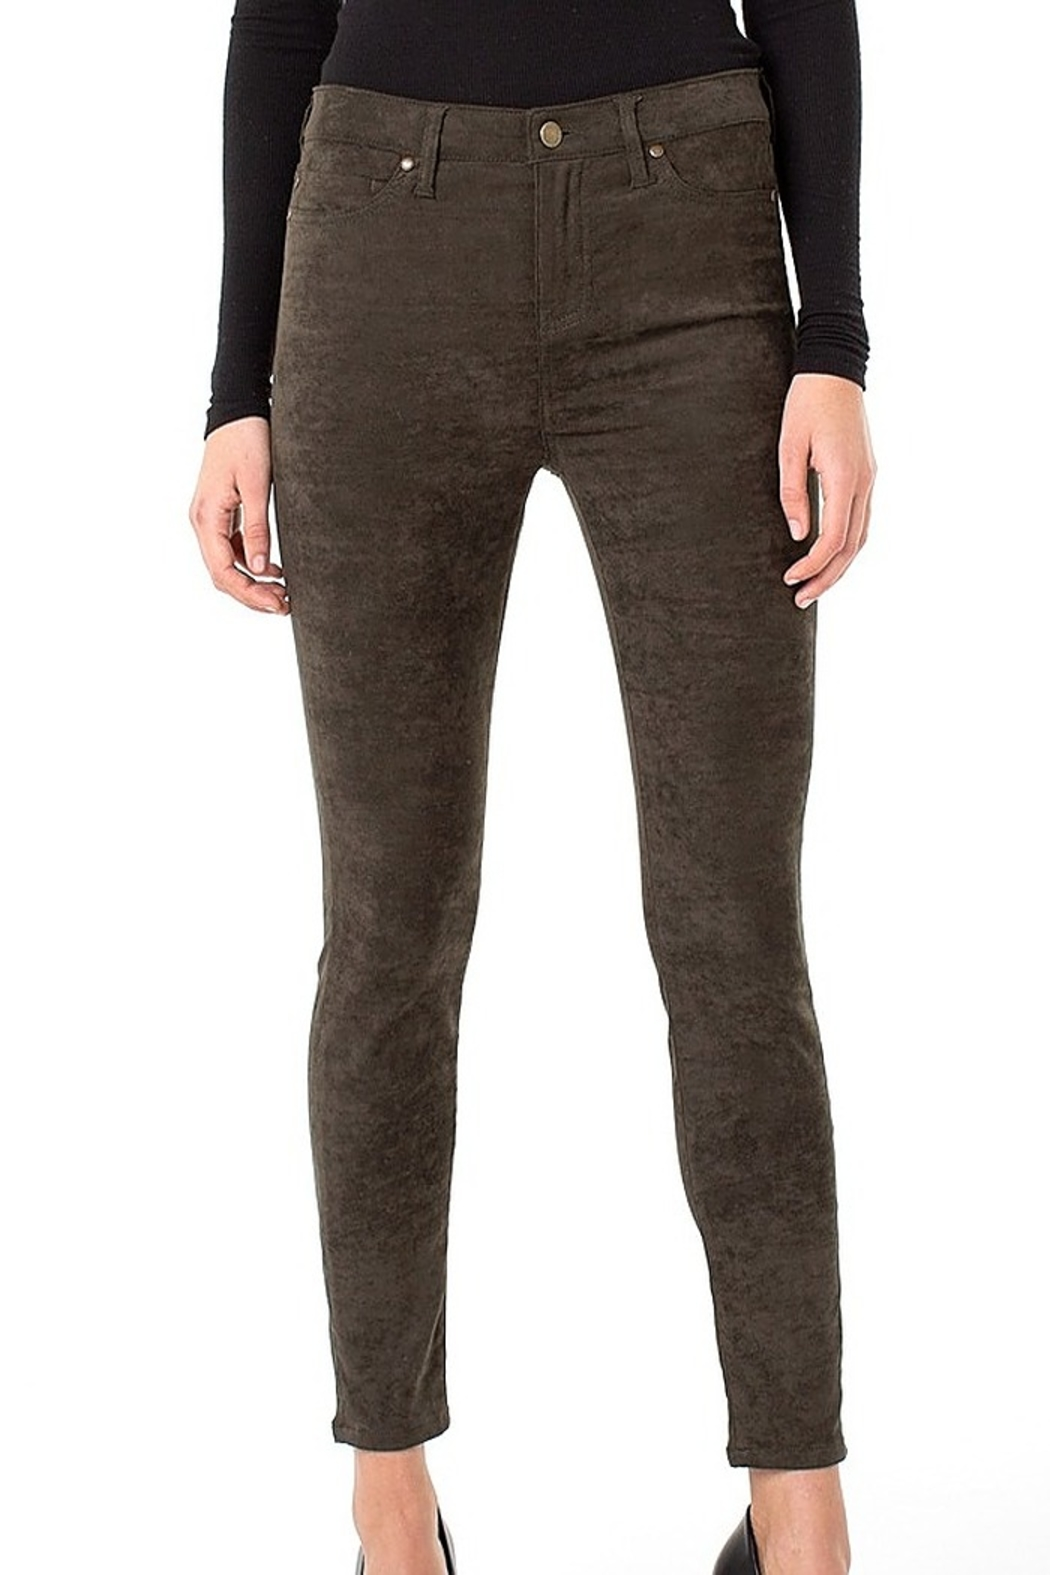 Liverpool Gia Faux-suede Skinnypant - Main Image